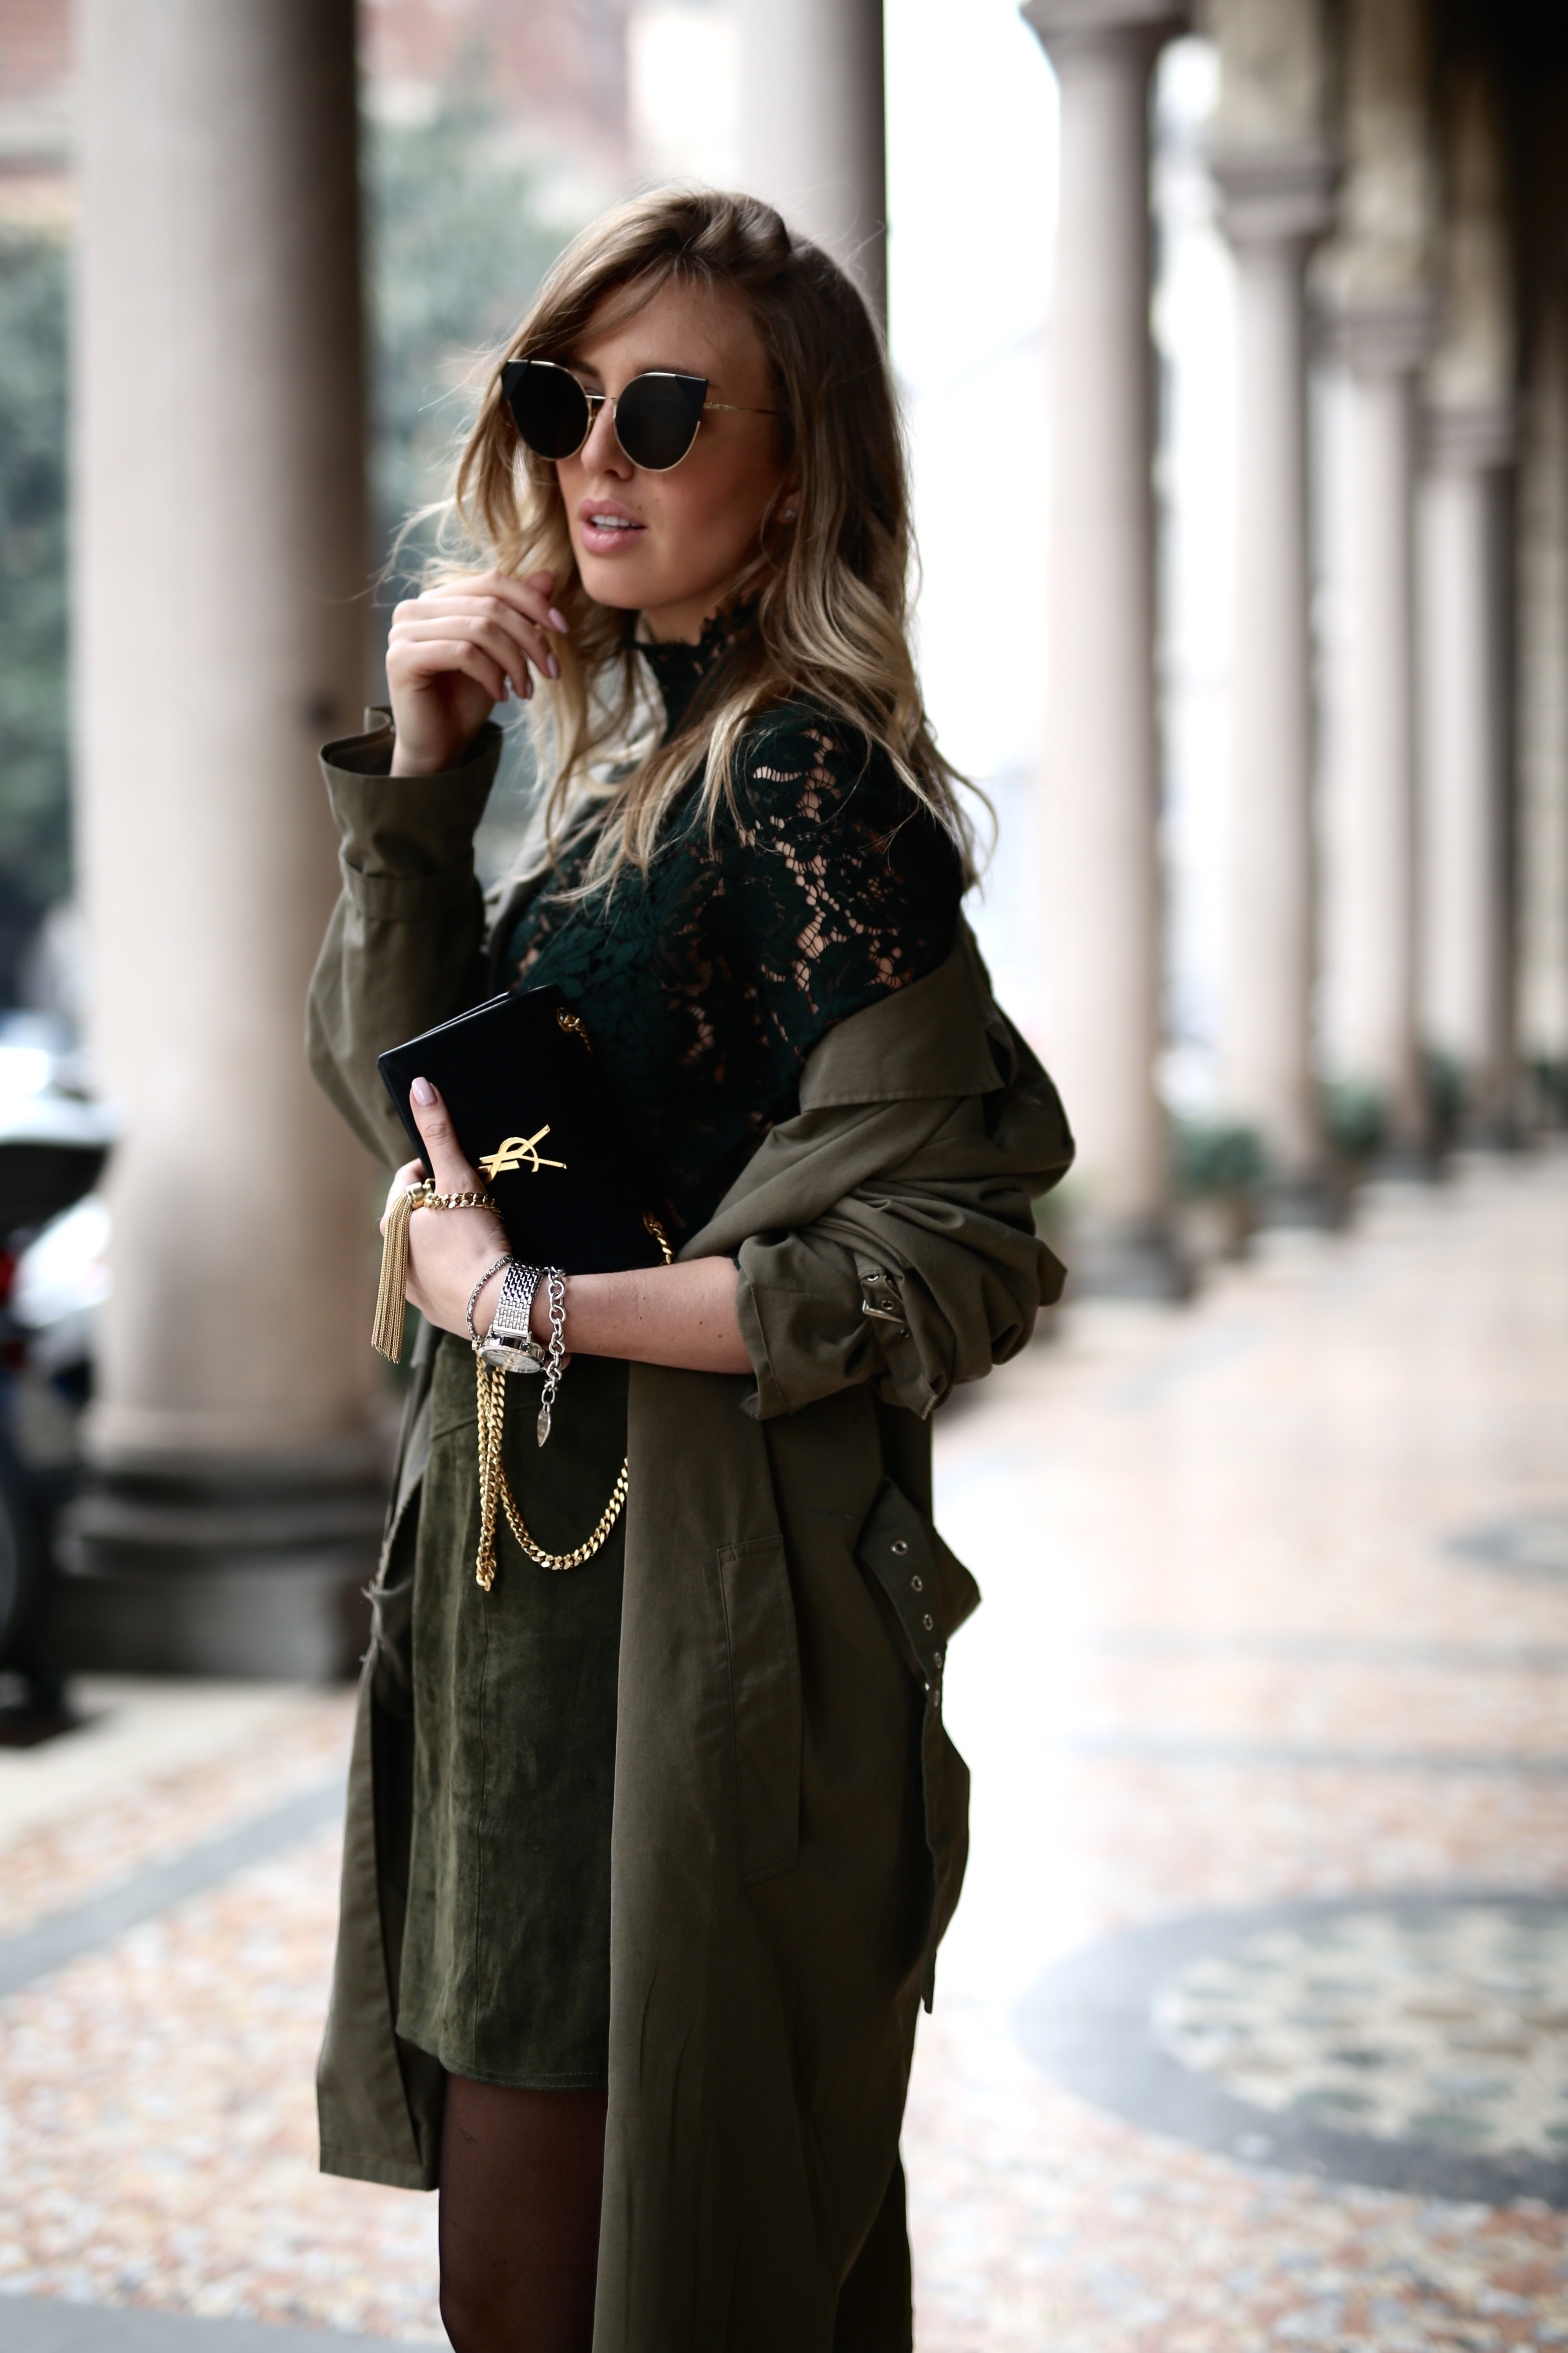 Milan fashion week all over khaki shoppisticated for When is fashion week over